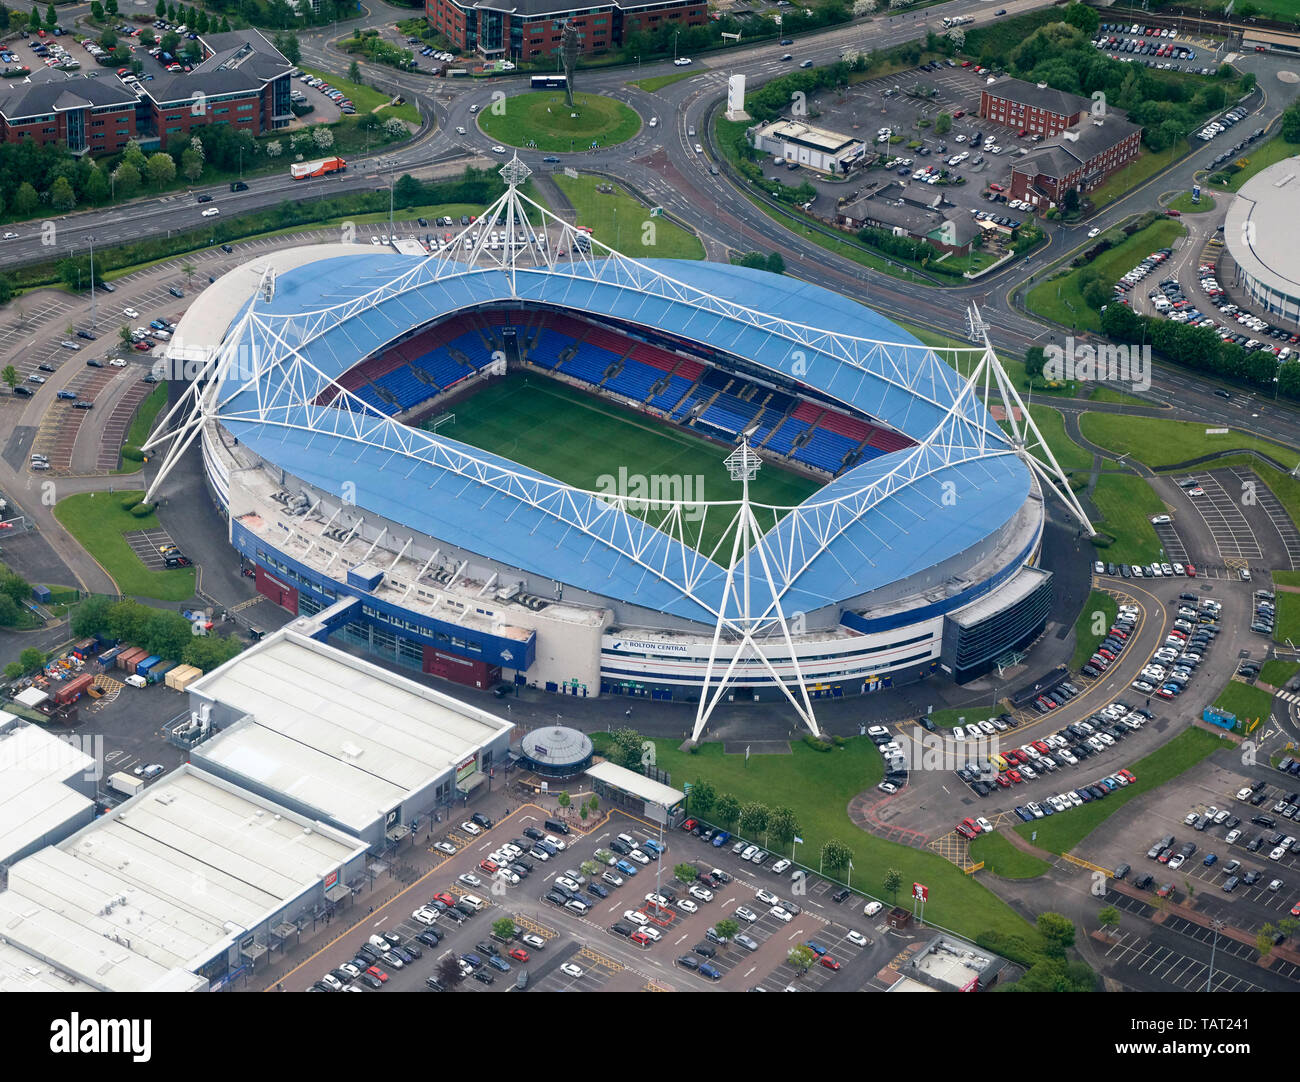 An aerial view of University of Bolton Stadium, Bolton Wanderers ground, North West England, UK Stock Photo